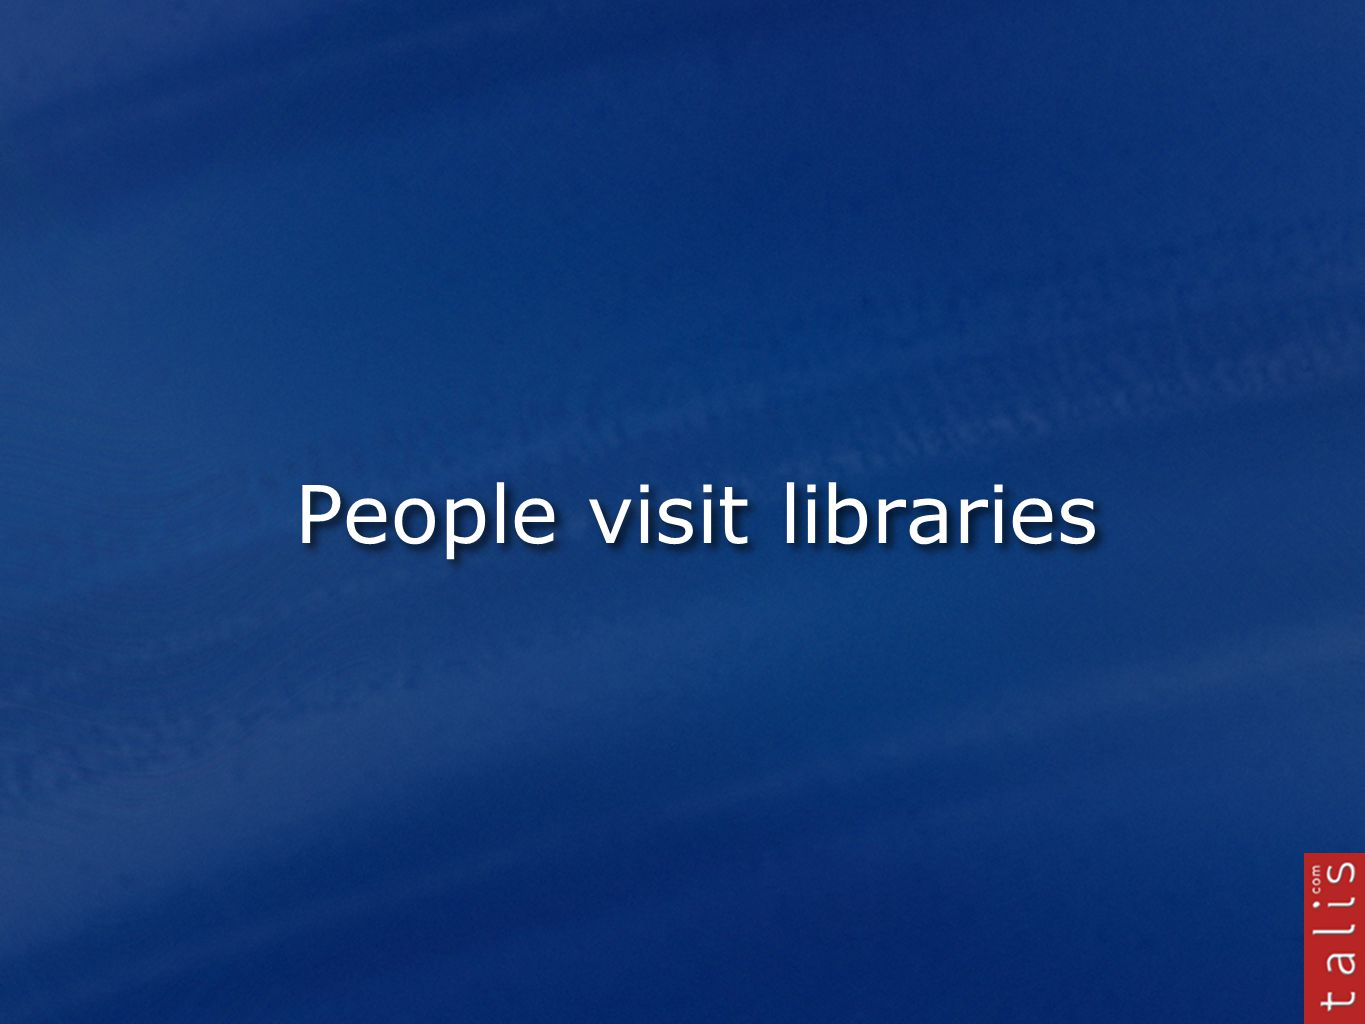 People visit libraries